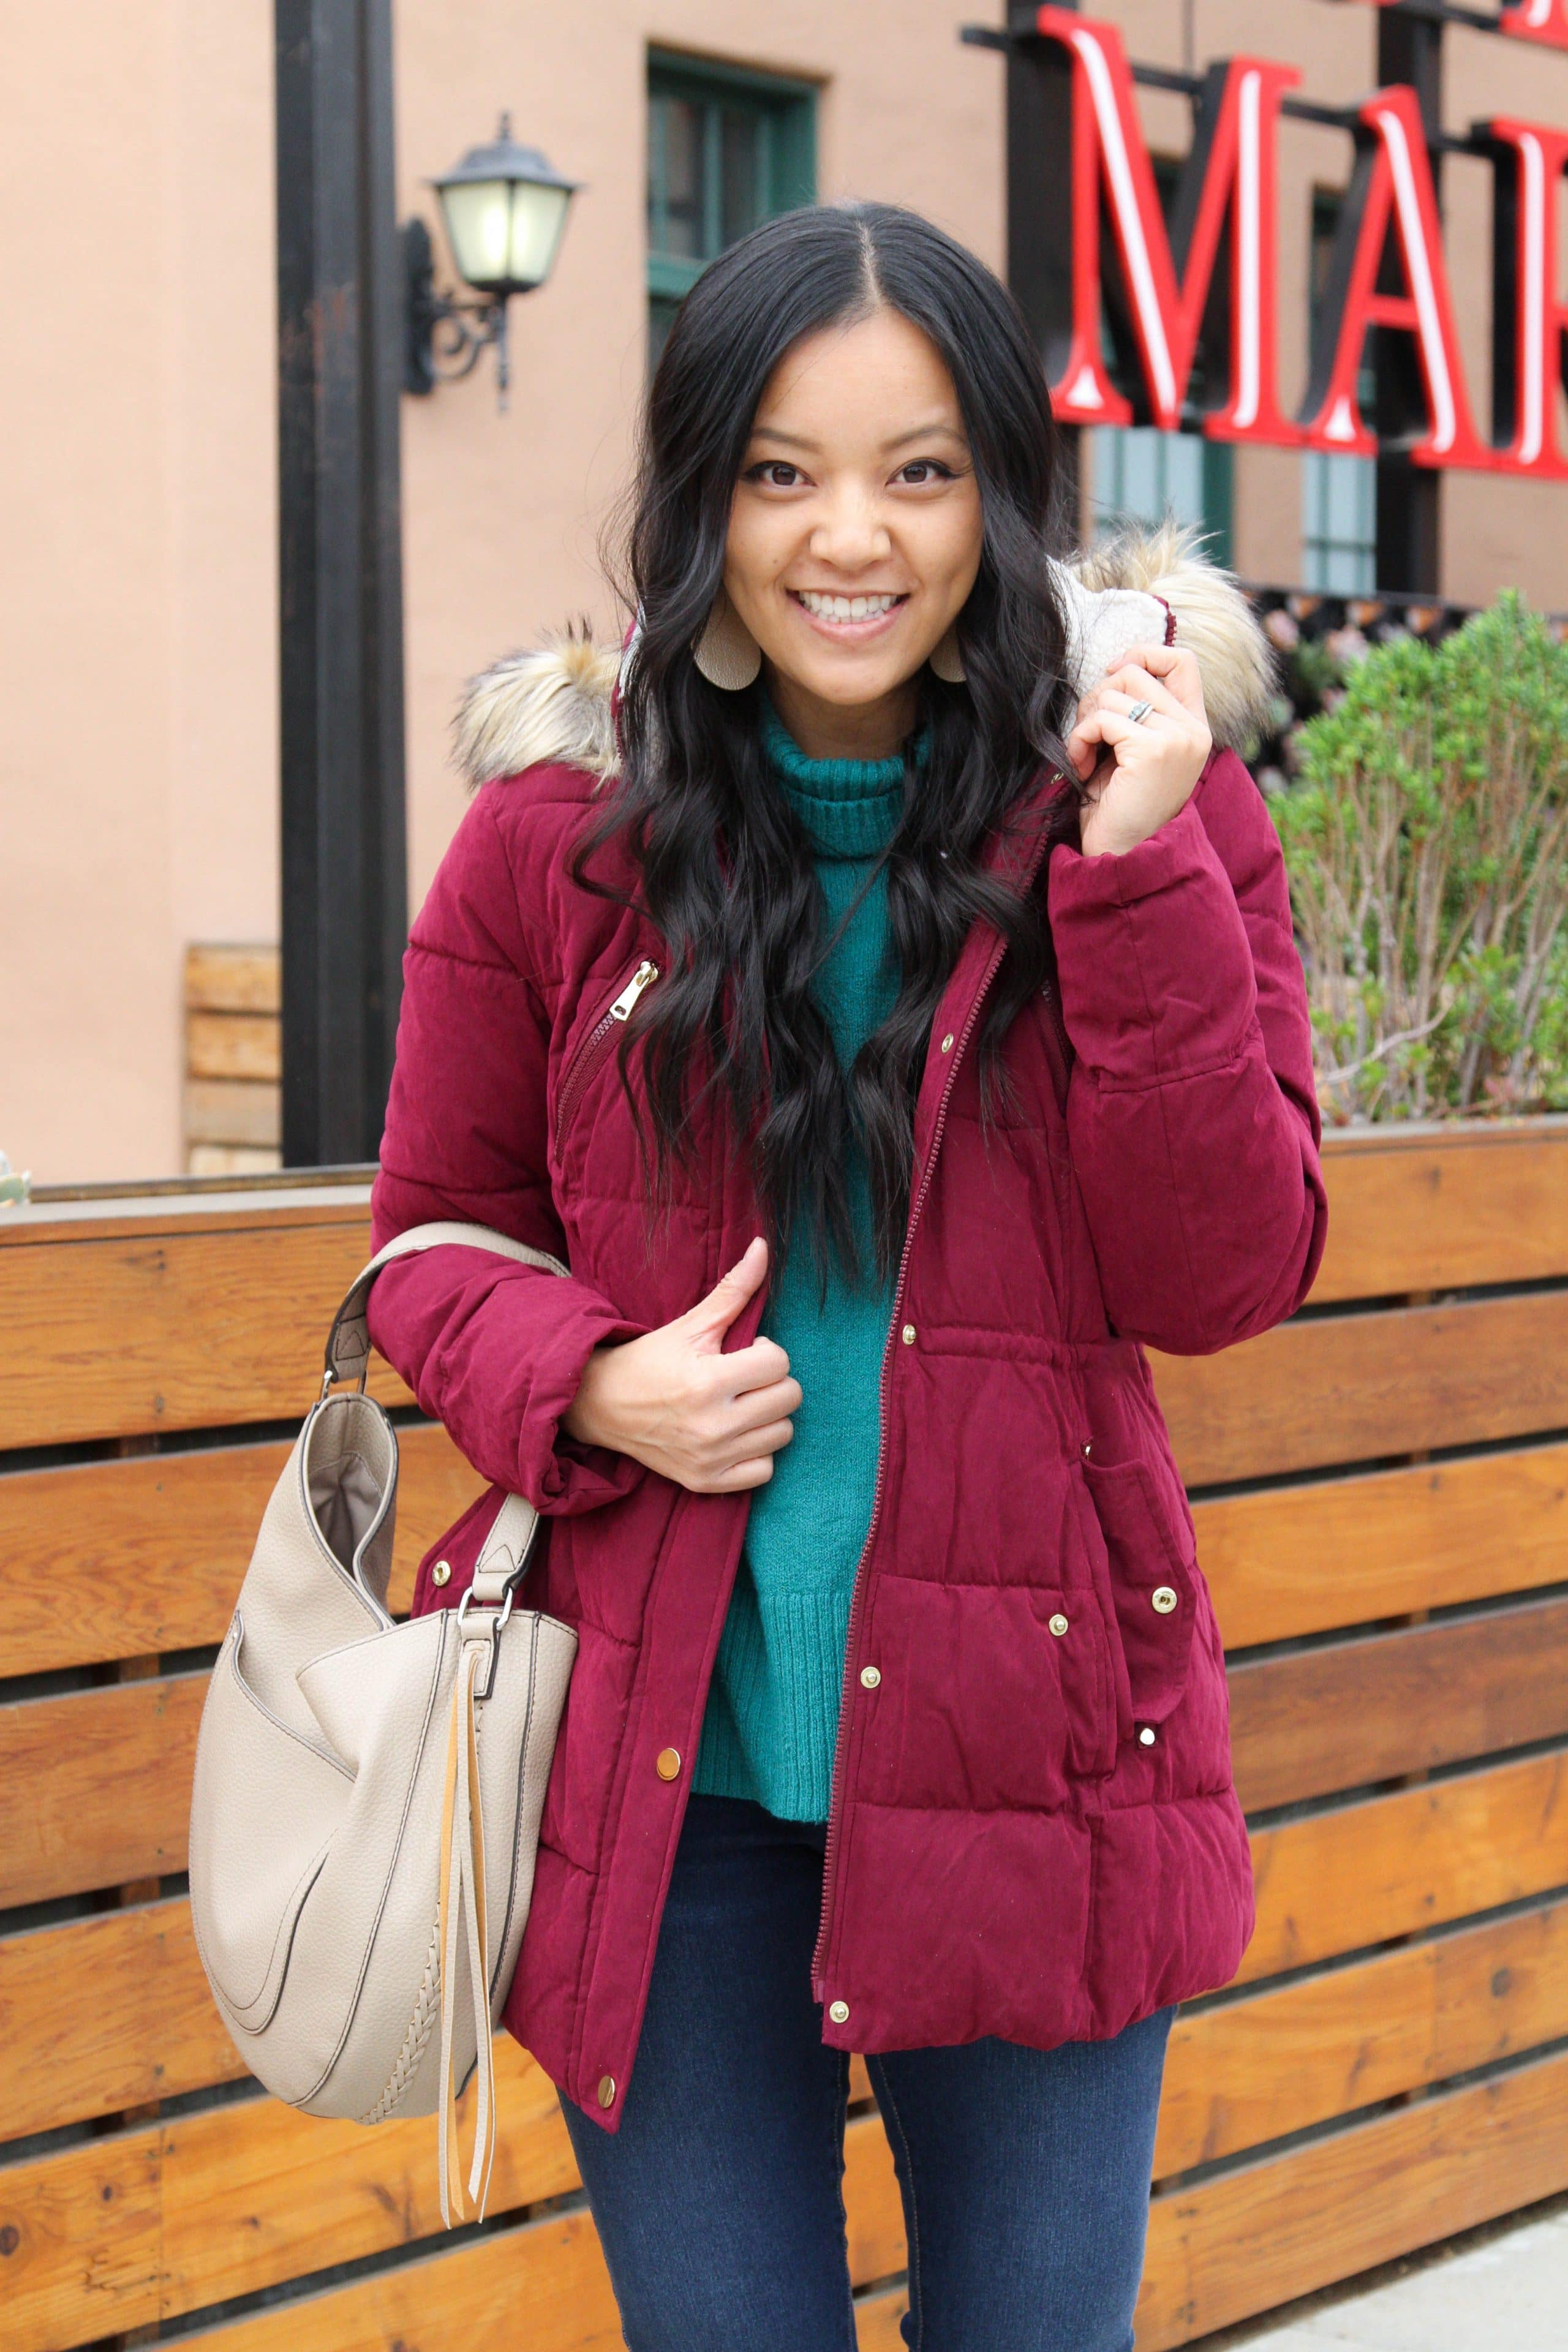 Maroon Puffer + Tan Bag + Skinnies